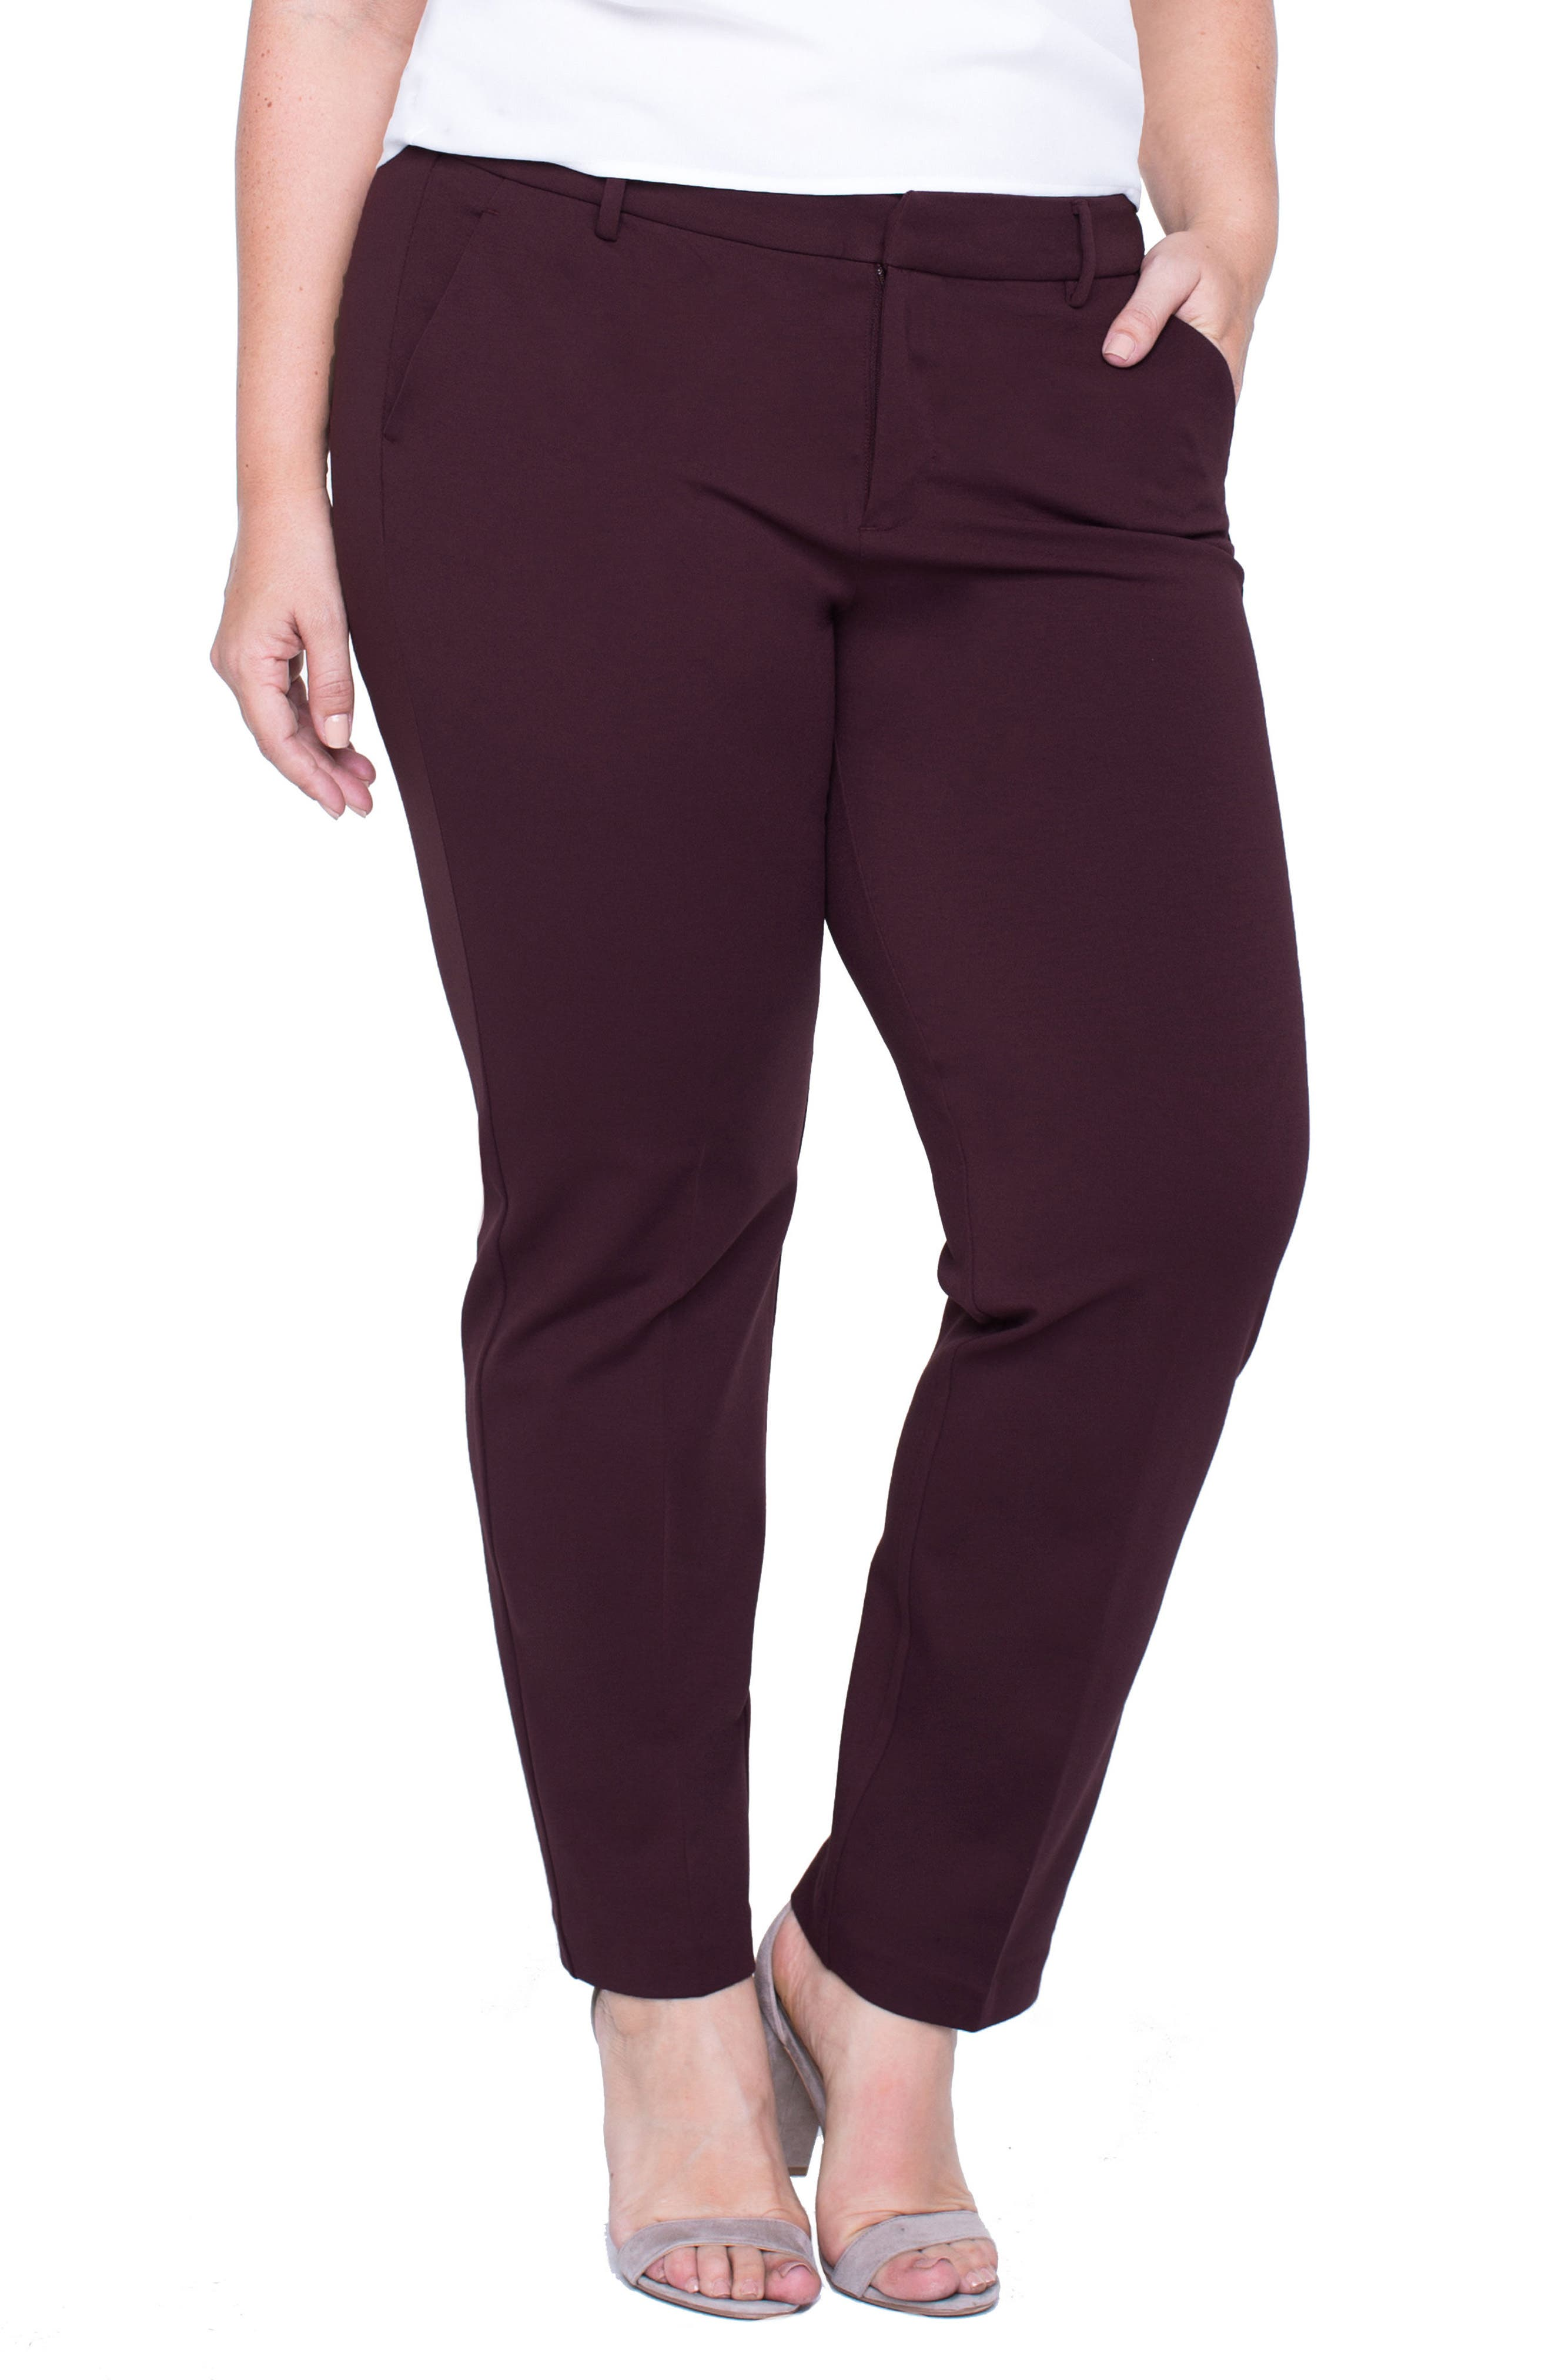 Main Image - Liverpool Jeans Company Kelsey Ponte Knit Trousers (Plus Size)